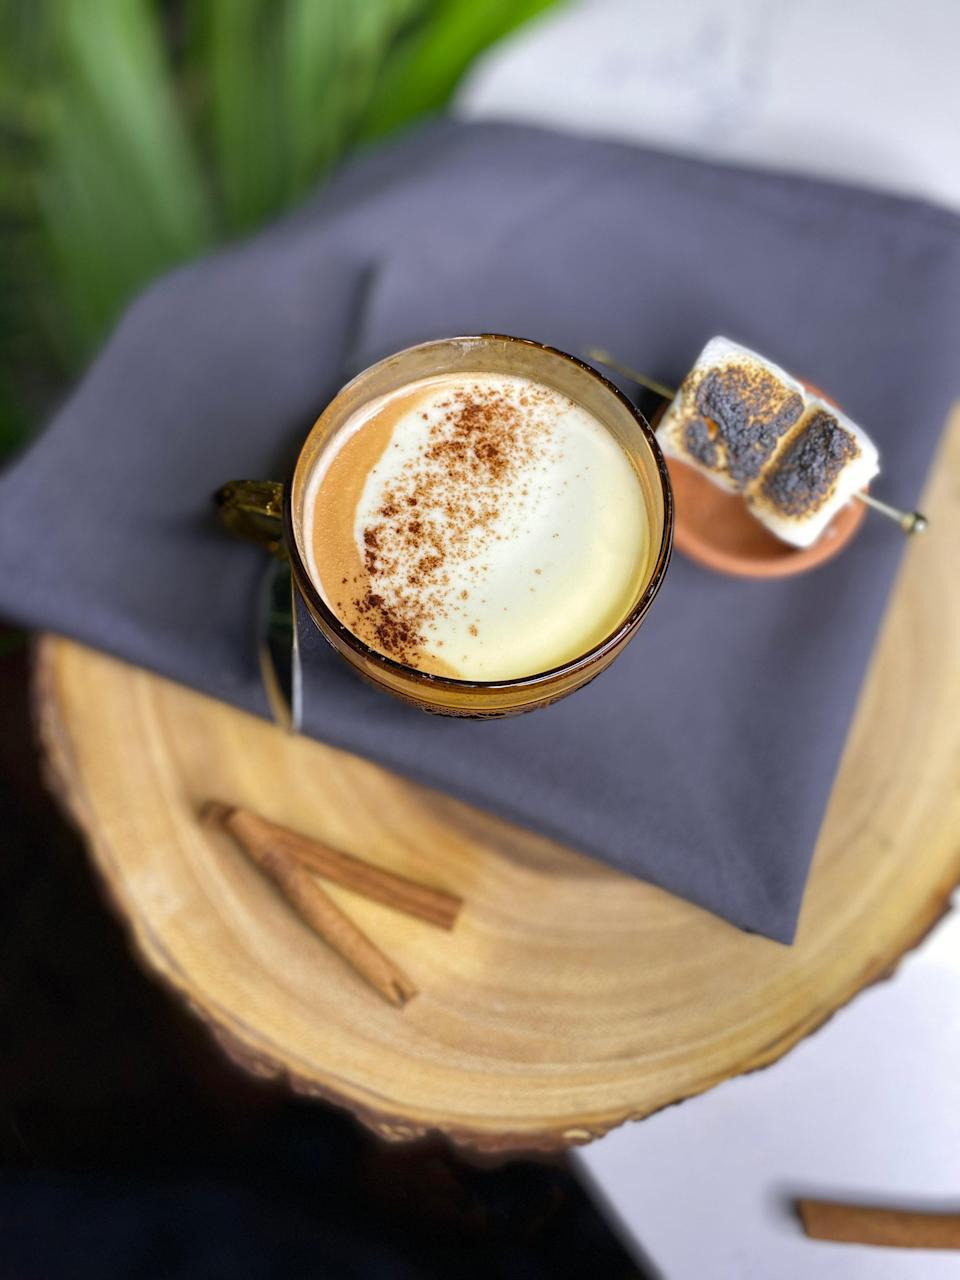 """<p>""""Cremosa de Cocoa is my favorite holiday drink at the moment,"""" says Chef Nelson German, owner of Afro-Latino cocktail Lounge <a href=""""https://www.sobremesaoak.com/"""" rel=""""nofollow noopener"""" target=""""_blank"""" data-ylk=""""slk:Sobre Mesa"""" class=""""link rapid-noclick-resp"""">Sobre Mesa</a>. """"I do want to shout out and mention my amazing Bar Manager Sadé Stamps for creating it. She wanted to create something festive but staying within our Afro-Latino concept.</p> <p>What I love about the cocktail is the childhood memories I get of times enjoying hot chocolate during the cold NYC winters. Especially when me and my cousins would sit around during Christmas before opening gifts sipping on hot chocolate. The coolest thing, though, is the addition of guava in the cocktail. I use to eat these amazing Dominican pastries that were a stuffed —""""Pan de Agua""""—with guava jam and chocolate. The cocktail brings me there.""""</p> <p>2 oz Corbin Cash Sweet Potato Liqueur</p> <p>1 oz Chairman's Reserve Spiced Rum</p> <p>1 oz red wine</p> <p>8 oz coconut milk</p> <p>7-8 oz semi-sweet Guittard chocolate</p> <p>2 oz marshmallow syrup</p> <p>4 oz marshmallows</p> <p>1 cinnamon stick</p> <p>1 pinch nutmeg</p> <p>1 tablespoon guava paste</p> <p>1 tablespoon sugar</p> <p>2 Allspice Berries</p> <p>chocolate powder</p> <p>Marshmallow syrup: In a saucepan whisk 4 oz marshmallows with 8 oz water over medium heat until well combined. Stir in cinnamon. Let cool before storing in the fridge. Keeps for 2 weeks. </p> <p>Rum sweet cream: In a bowl, using a hand mixer or whisk, whip cold whipping cream until it starts to thicken. Add 1 oz spiced rum and sugar, whip until just firm.</p> <p>Combine coconut milk, guava paste, chocolate, marshmallow syrup, wine, Allspice, and nutmeg in a saucepan over medium heat. Whisk until combined without allowing to boil. Remove from heat and stir in sweet potato liqueur. Strain and pour into a mug. Garnish with rum sweet cream and a sprinkle of chocolate powder. </p>"""